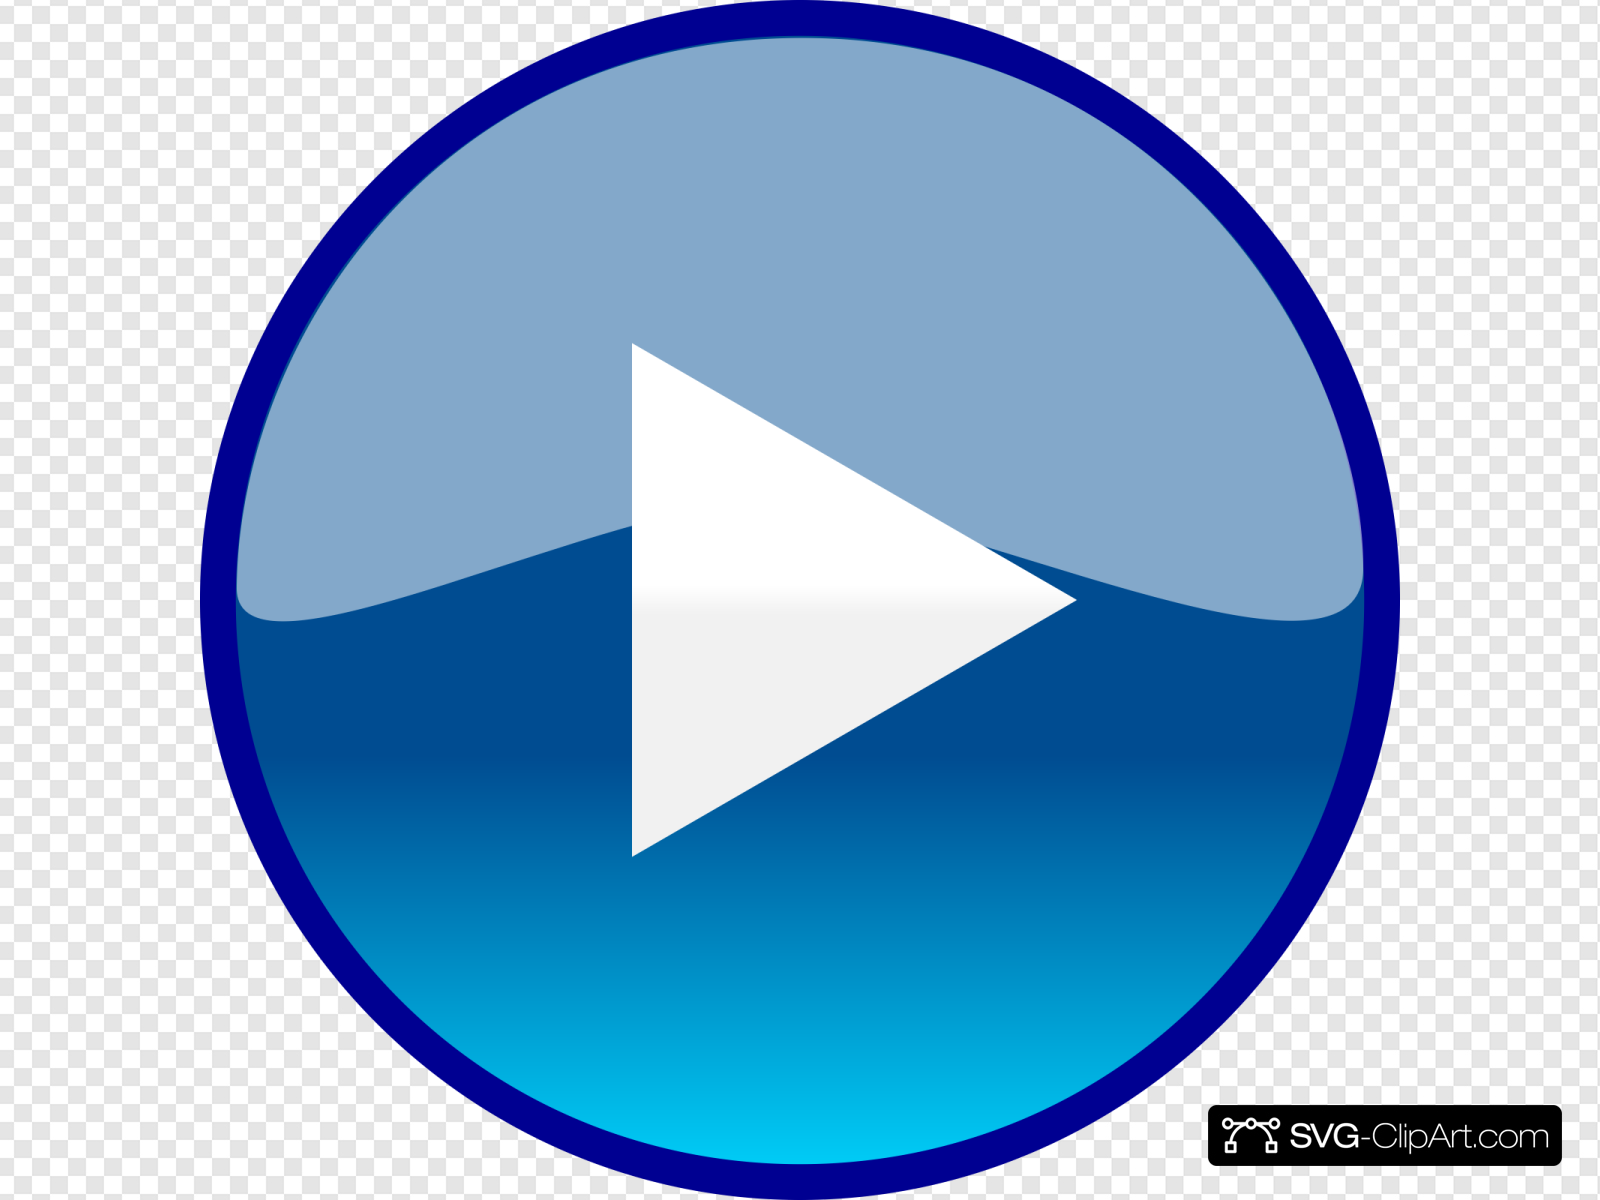 Windows Media Player Play Button Clip art, Icon and SVG.